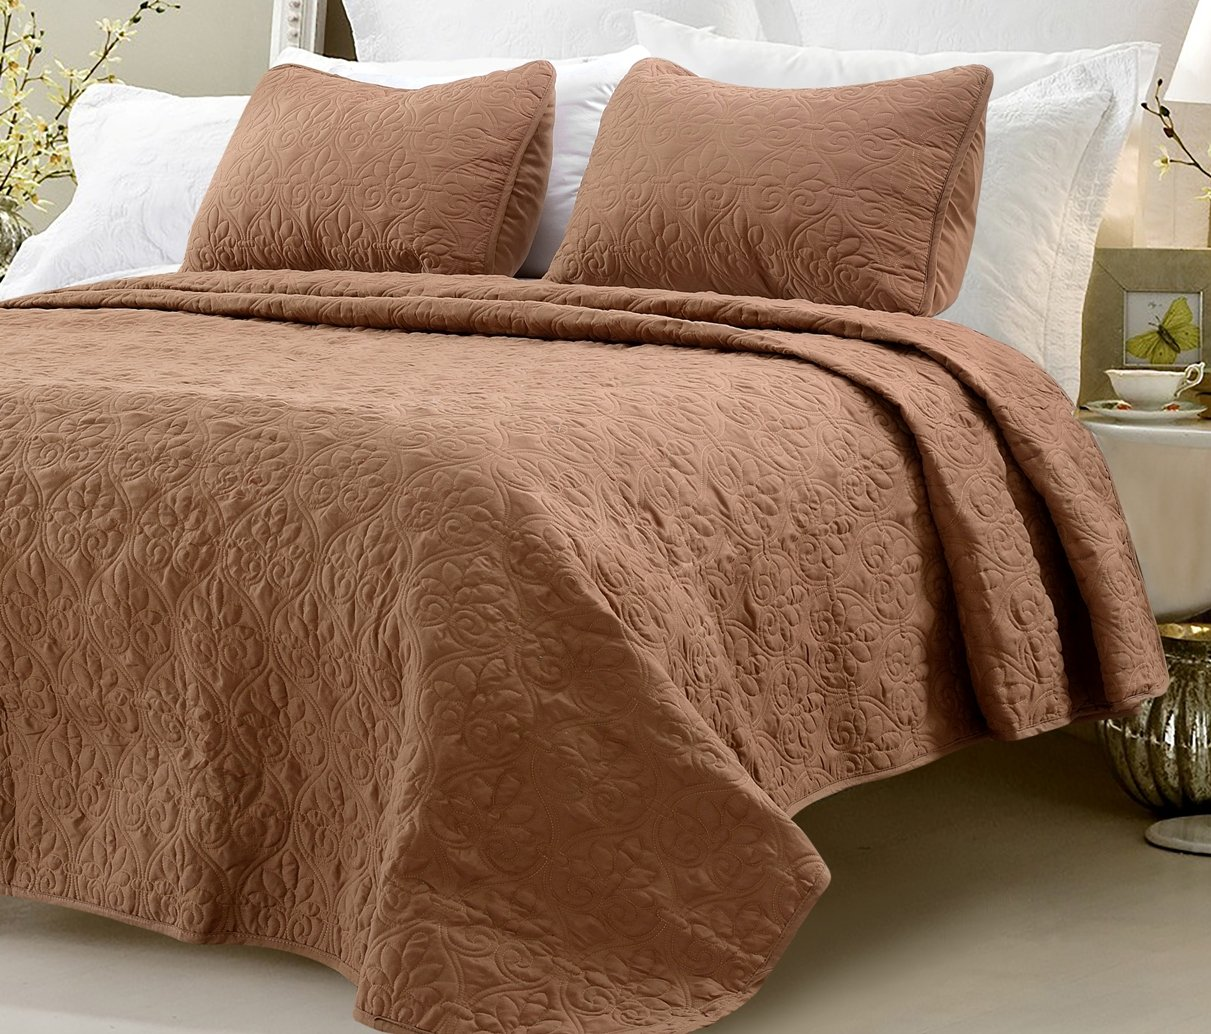 Web Linens Inc Multiple Sizes - Oversized-3pc Quilted Coverlet Set- White -Queen - Exclusively by Blowout Bedding RN# 142035 FBA_3414-Queen